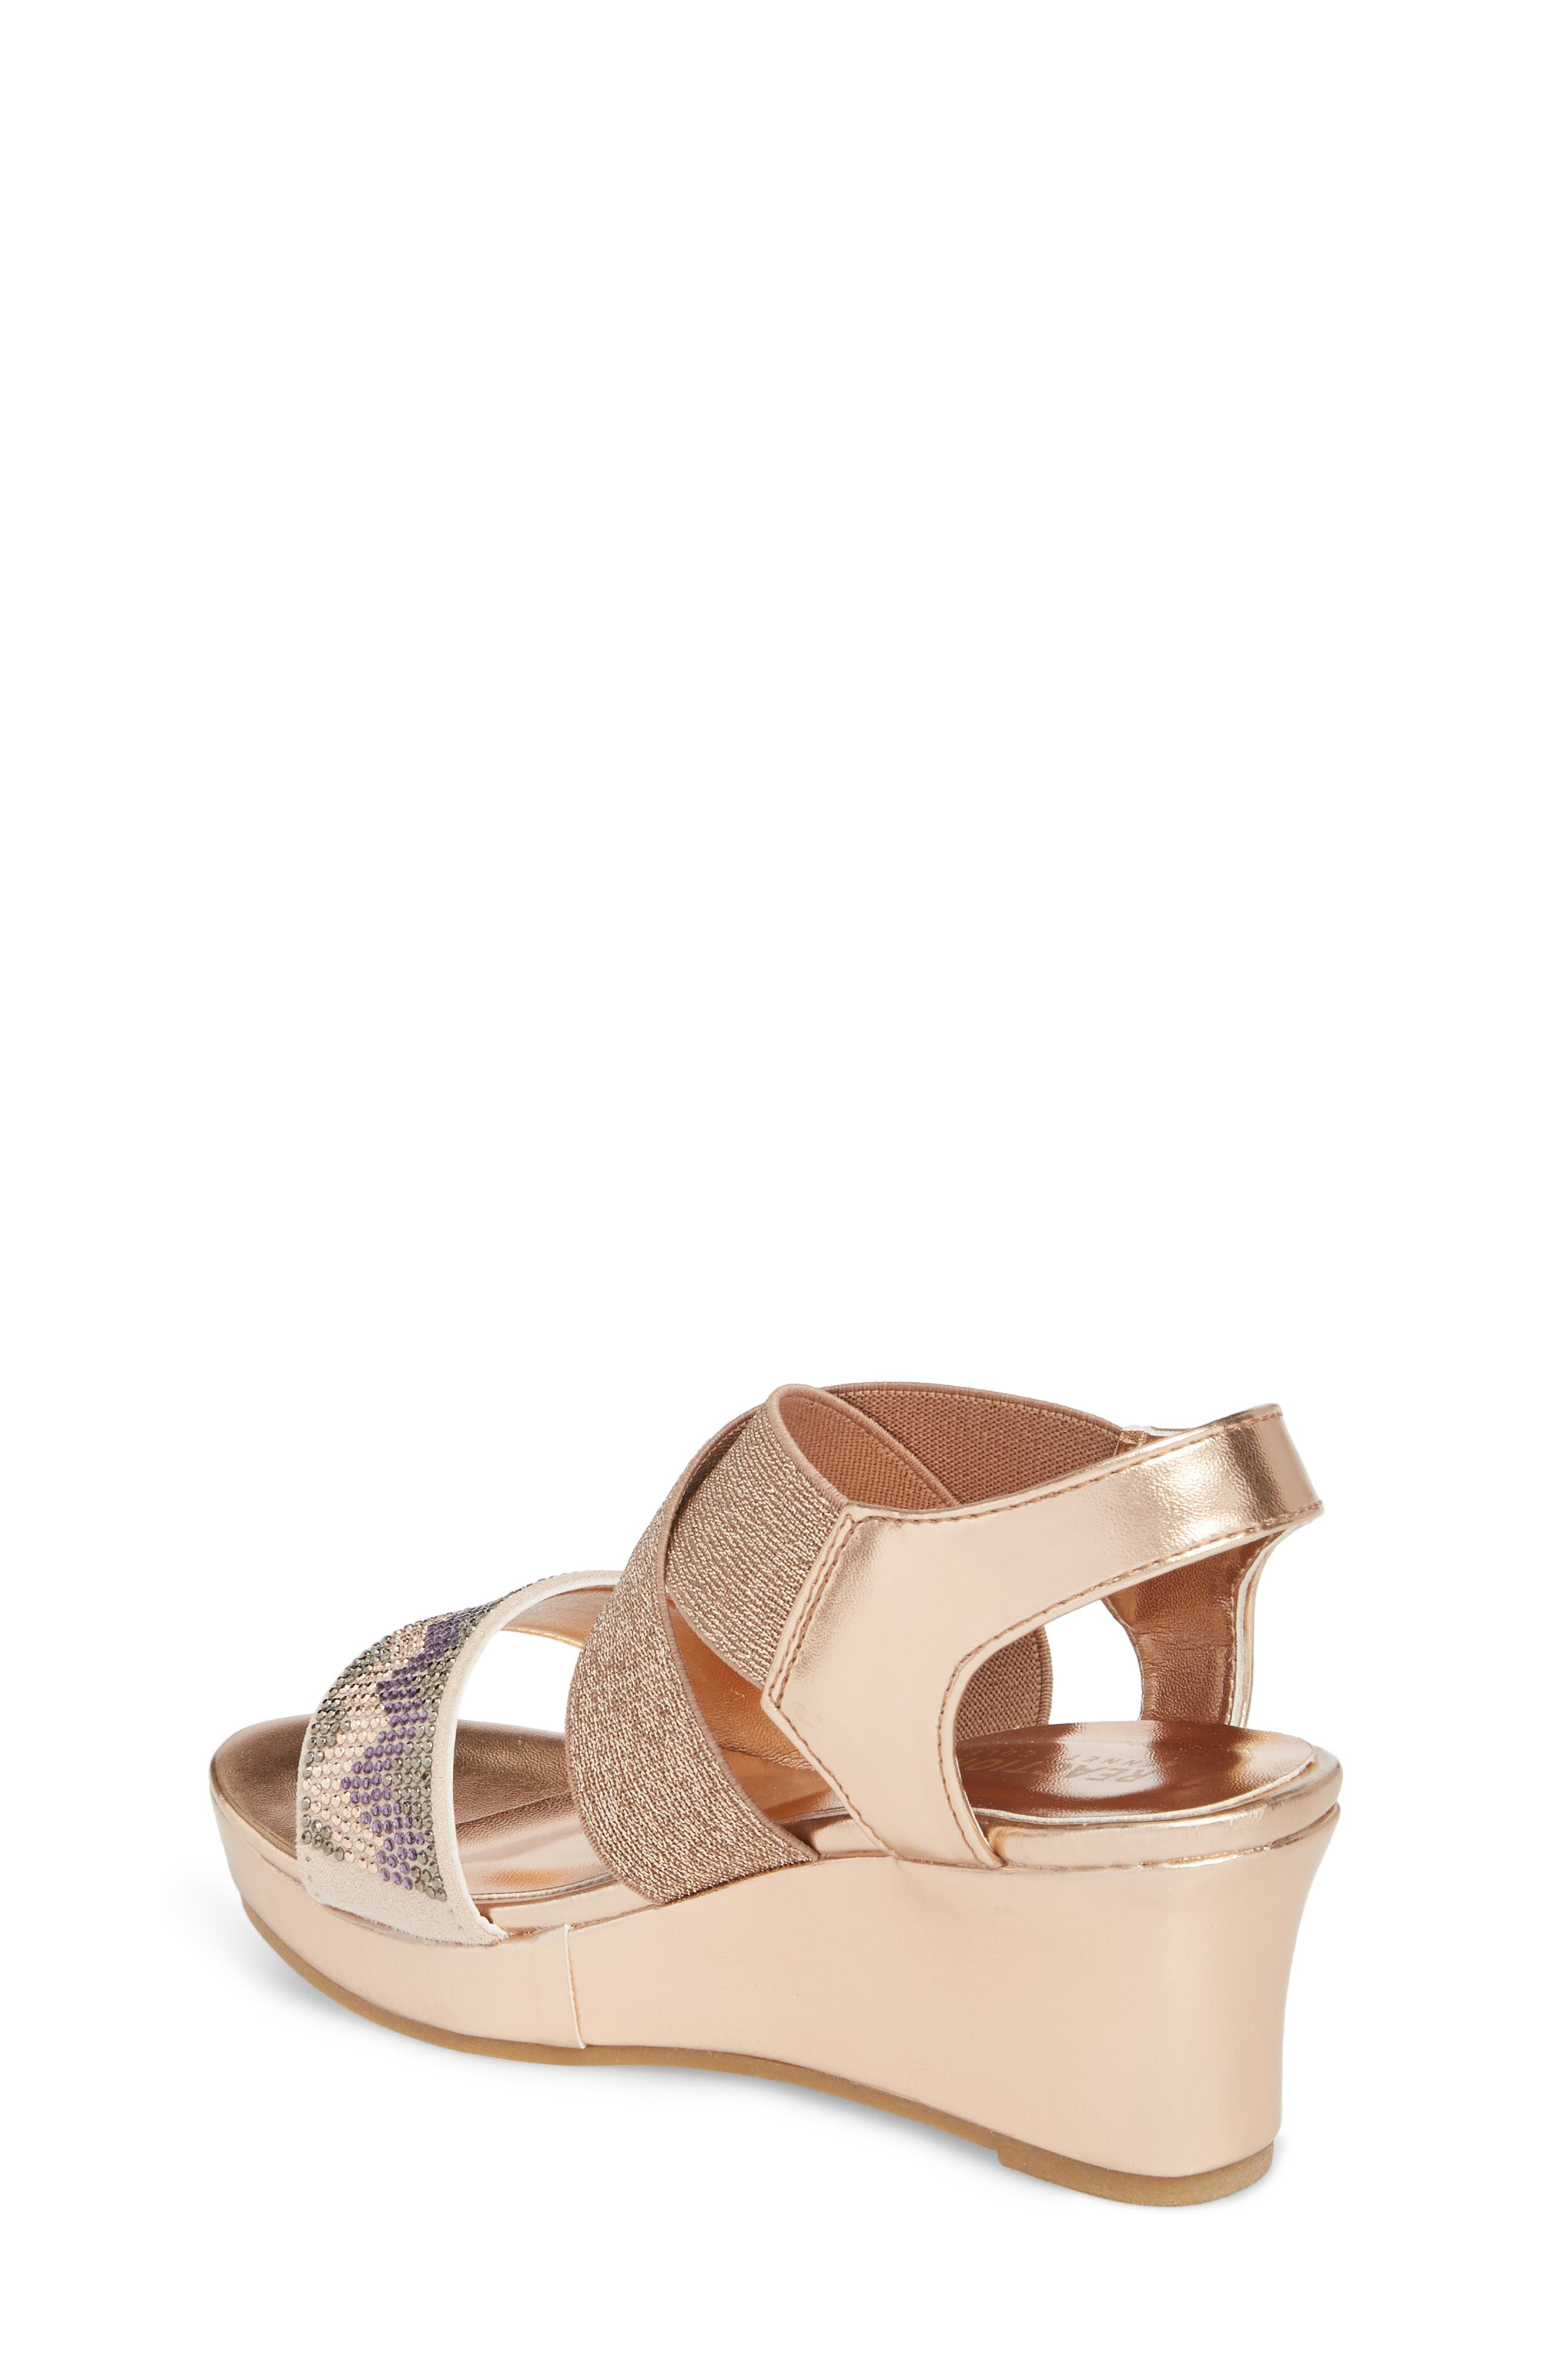 Reaction Kenneth Cole Reed Mamba Embellished Wedge Sandal,                             Alternate thumbnail 2, color,                             Rose Metallic